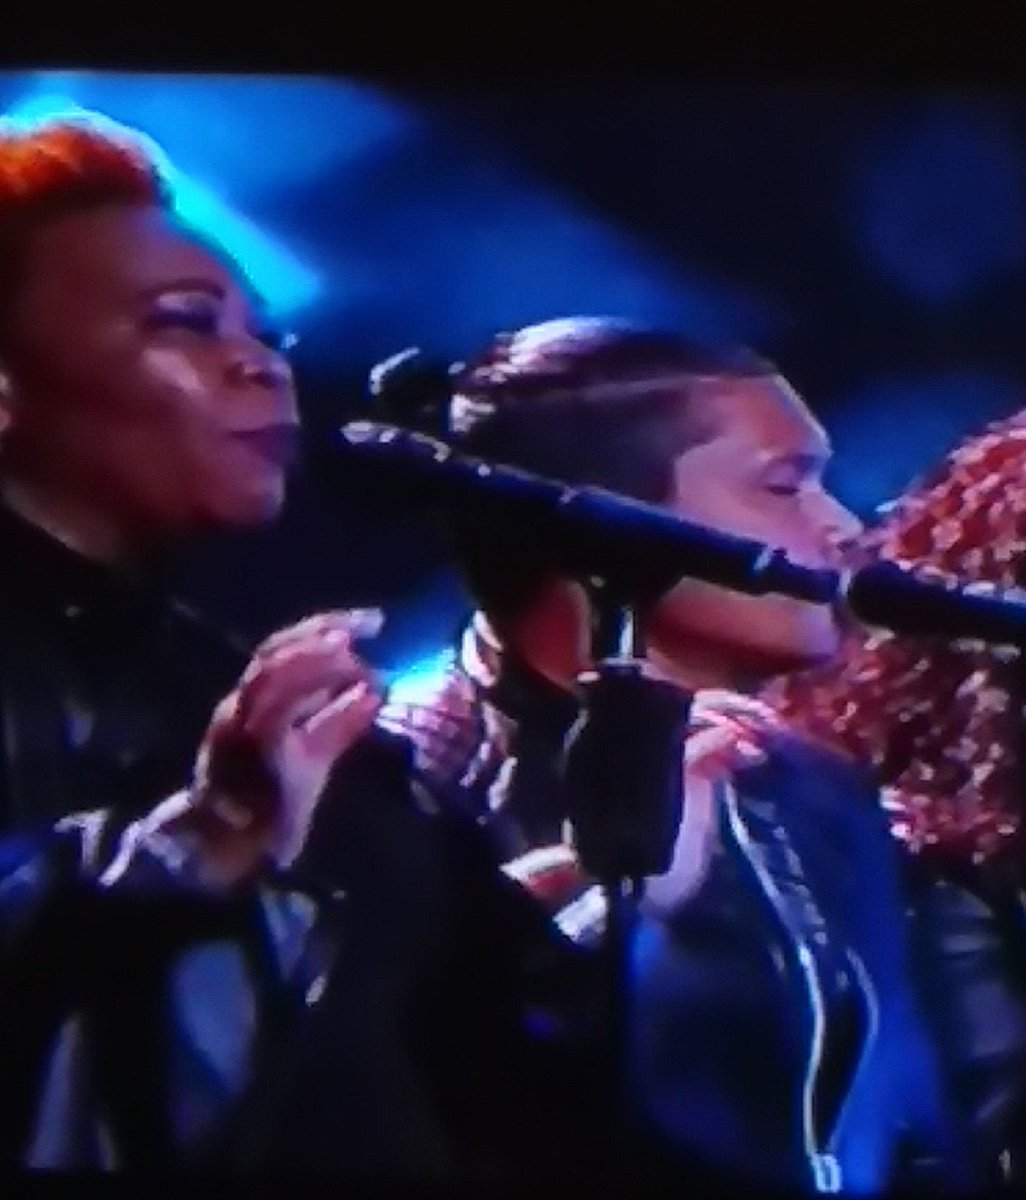 Thanx the backing vocalist there are amazing #IdolsSA #succeedo not bad https://t.co/bfToCUQciZ